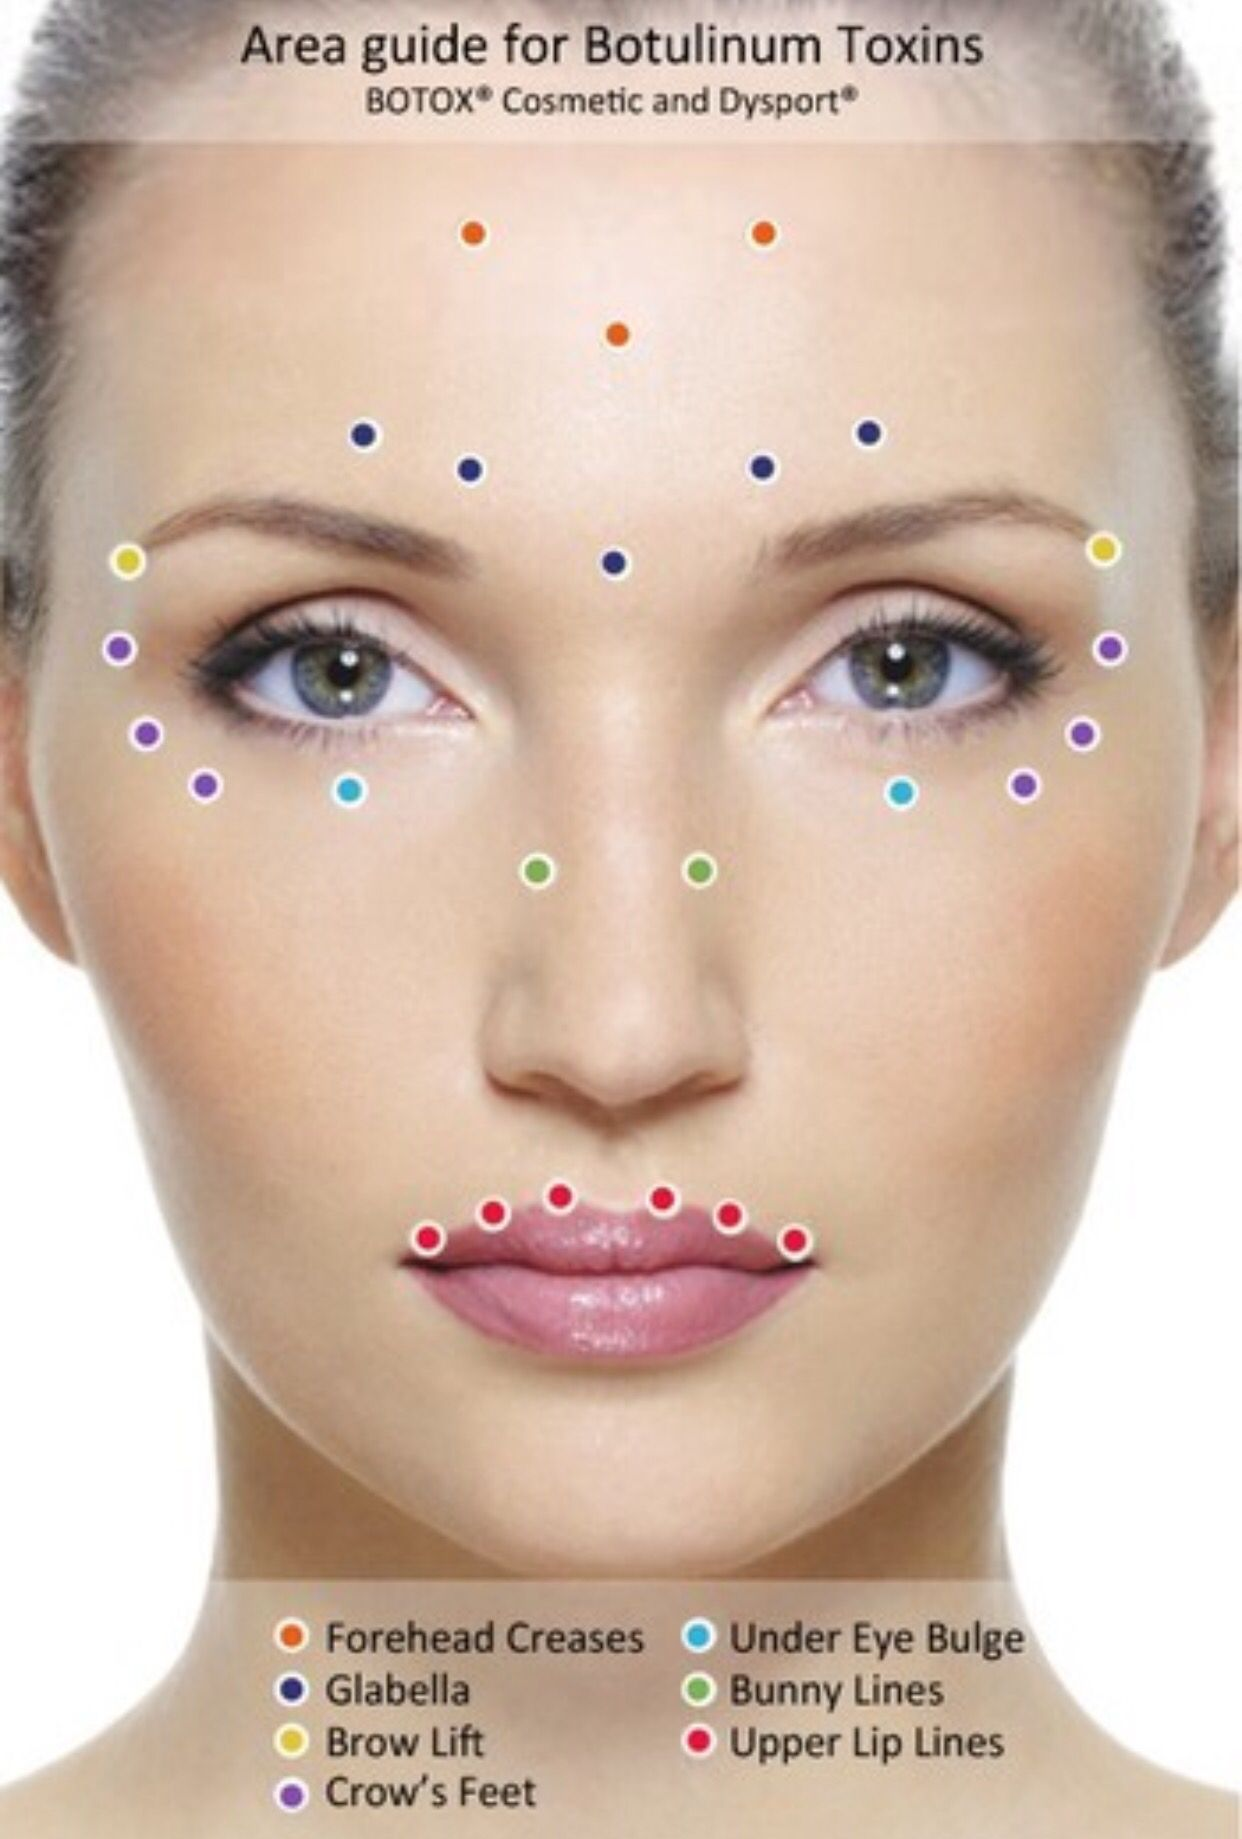 Botox injection injection site facial